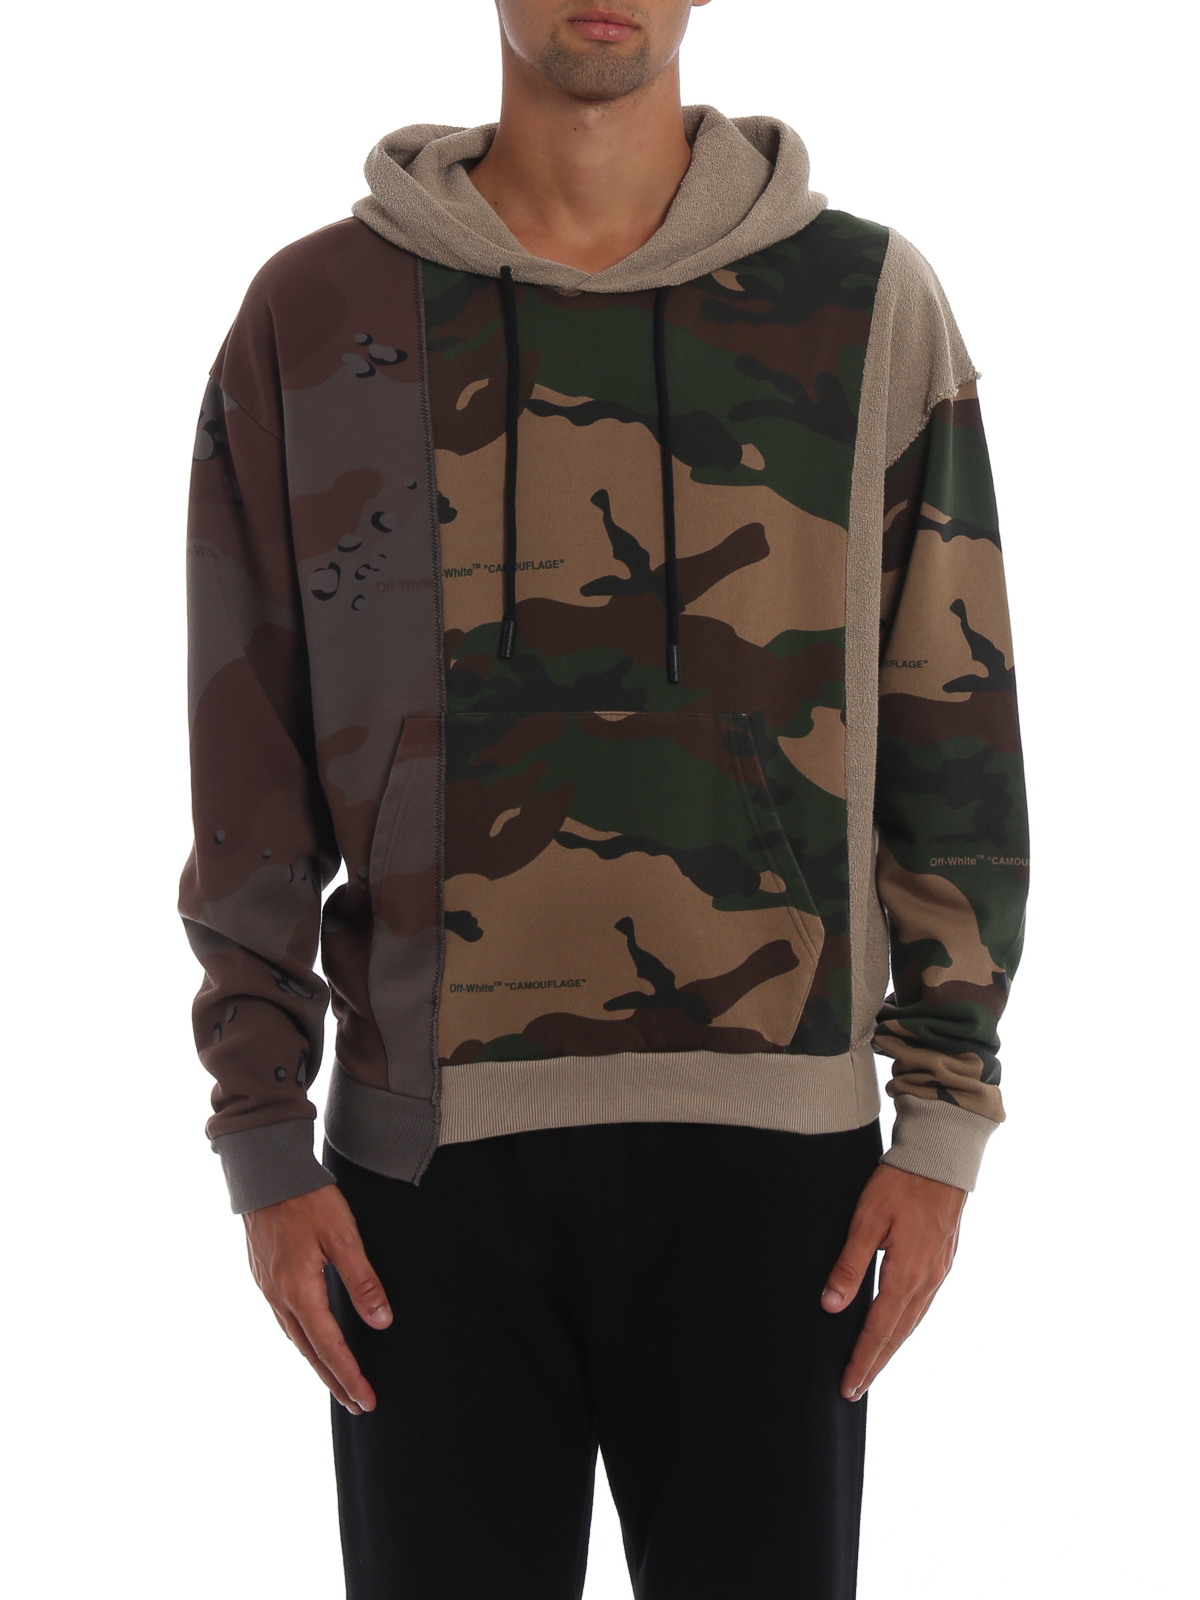 Off White Reconstructed Camo Hoodie Sweatshirts Sweaters